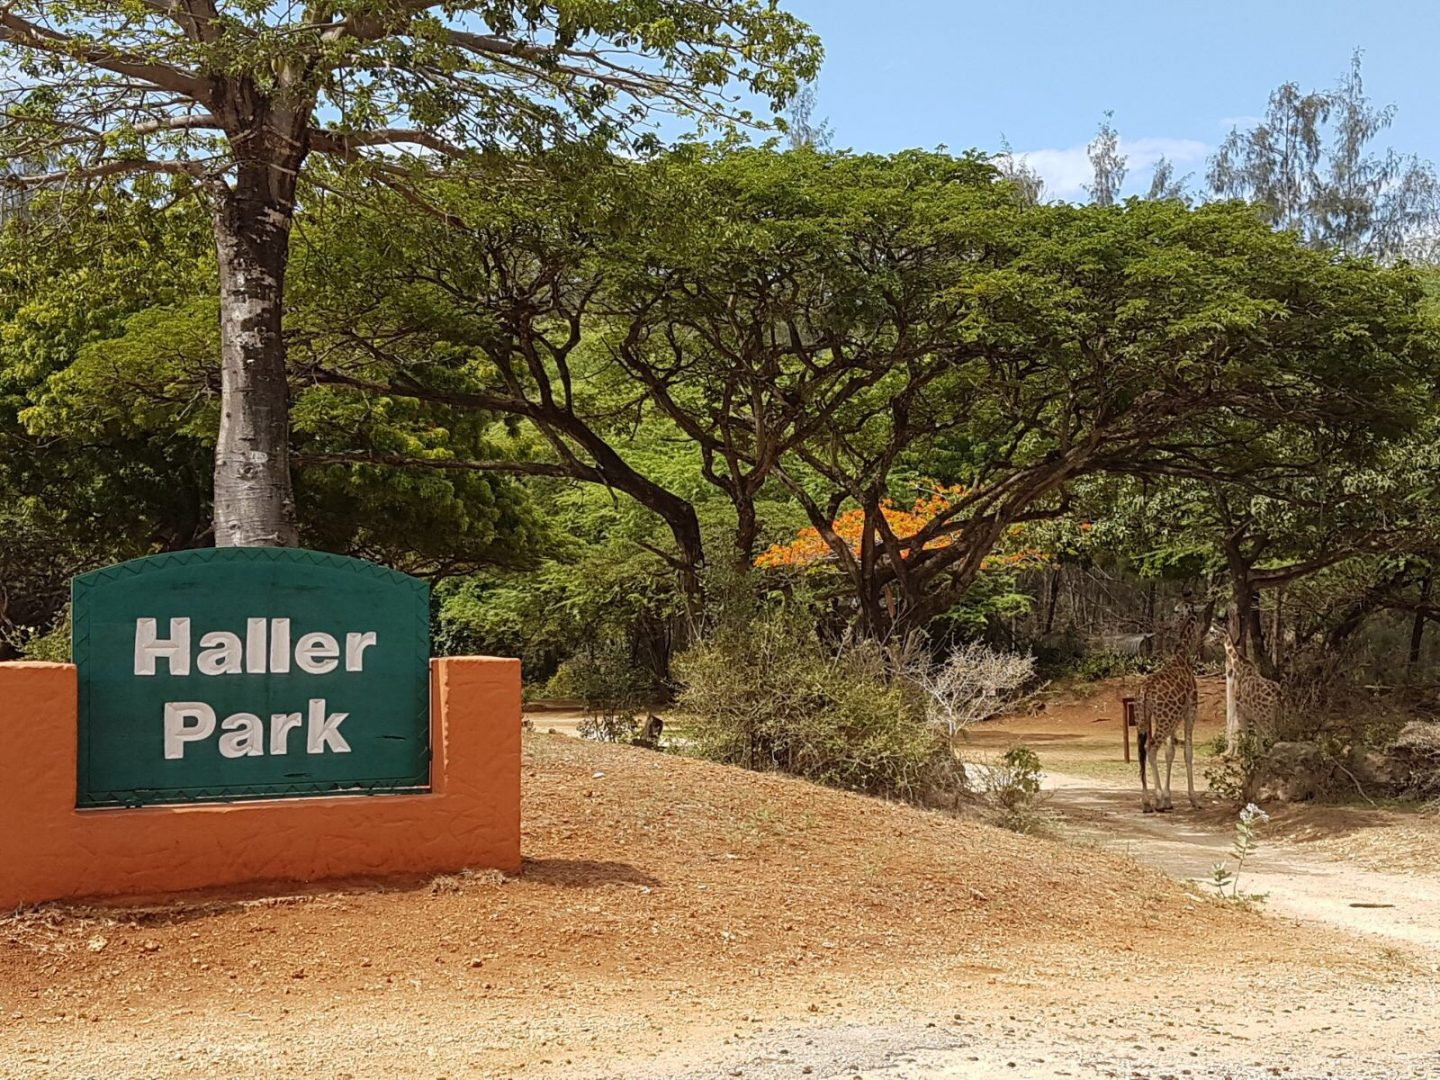 Haller Park – a beautiful ecological sanctuary in Mombasa